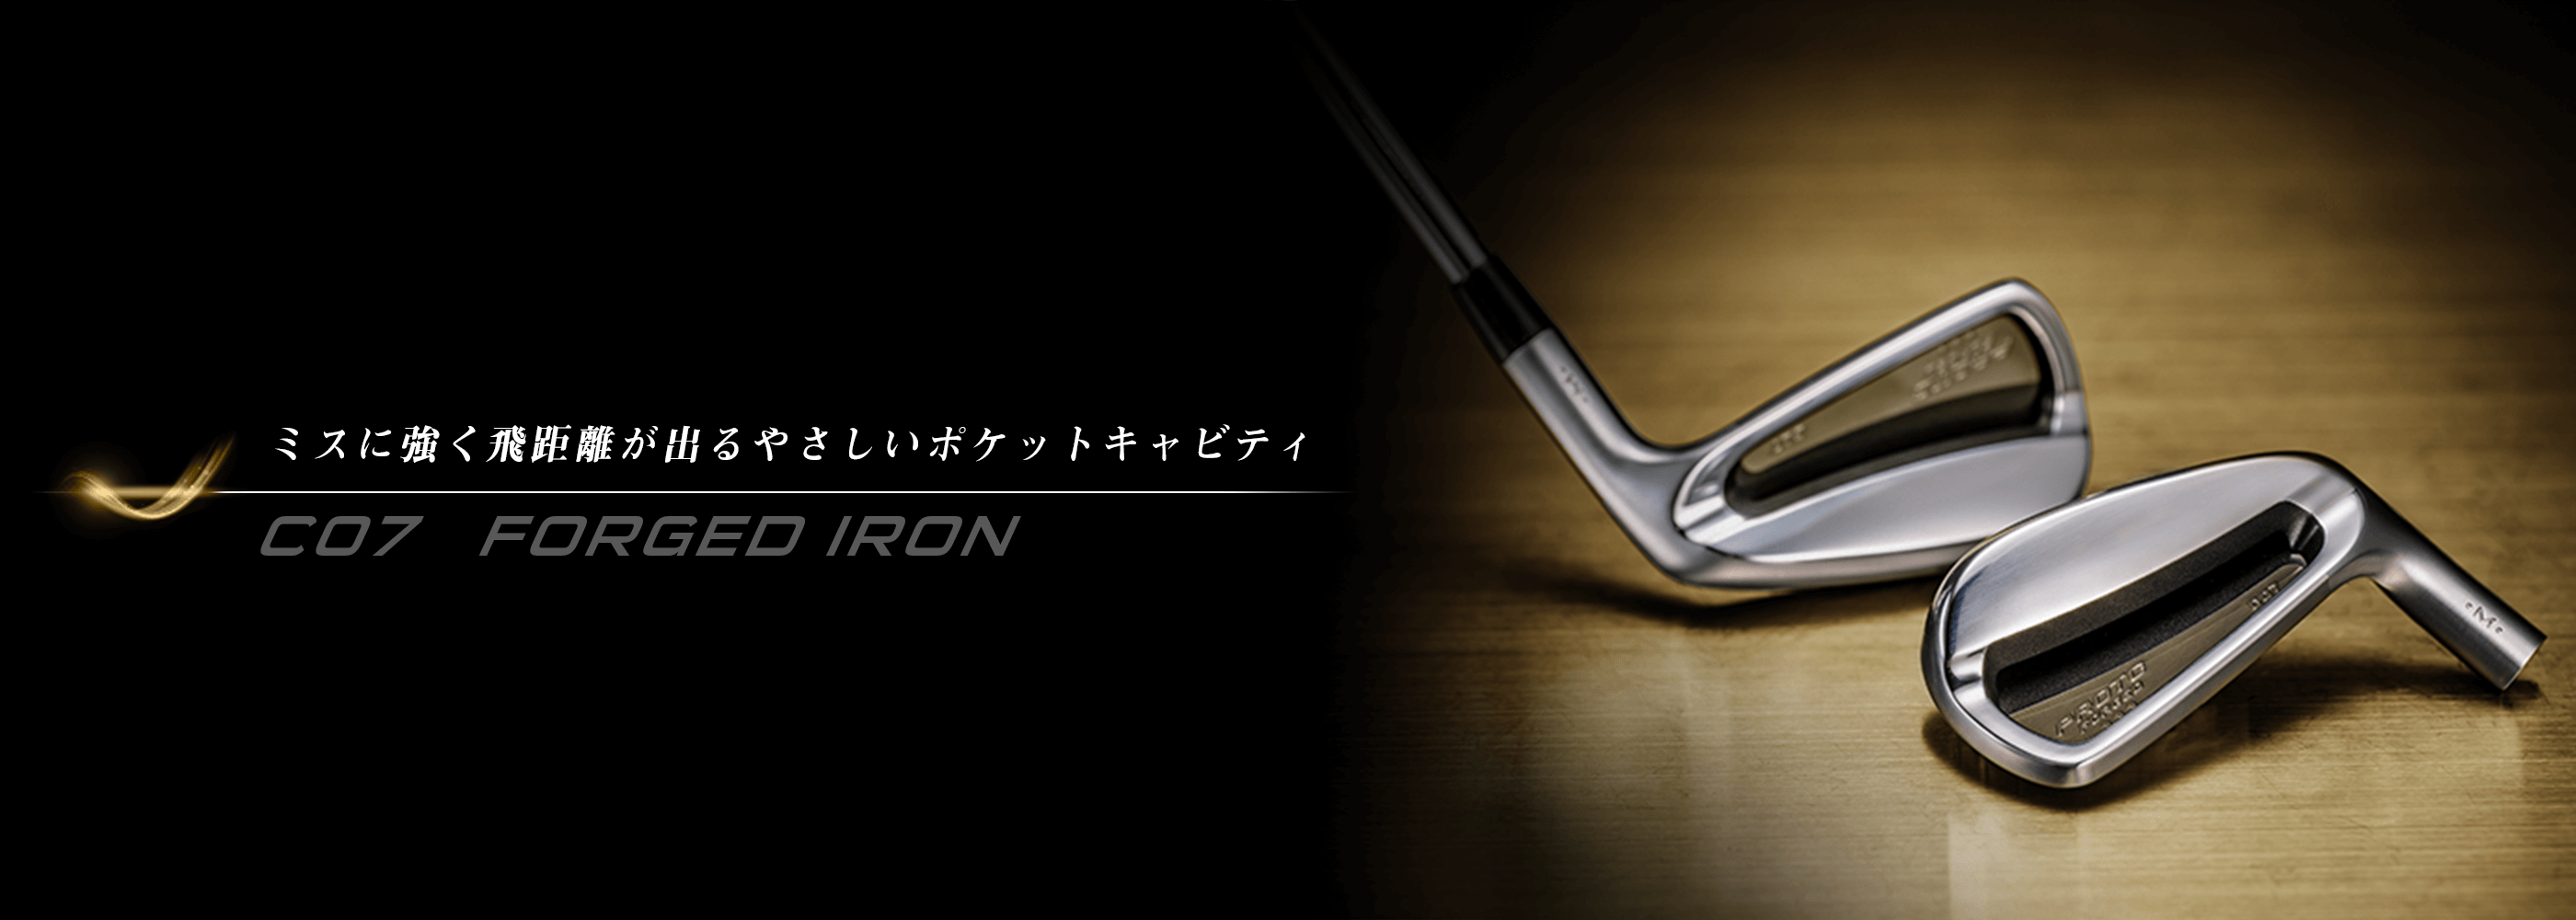 C07 FORGED IRON